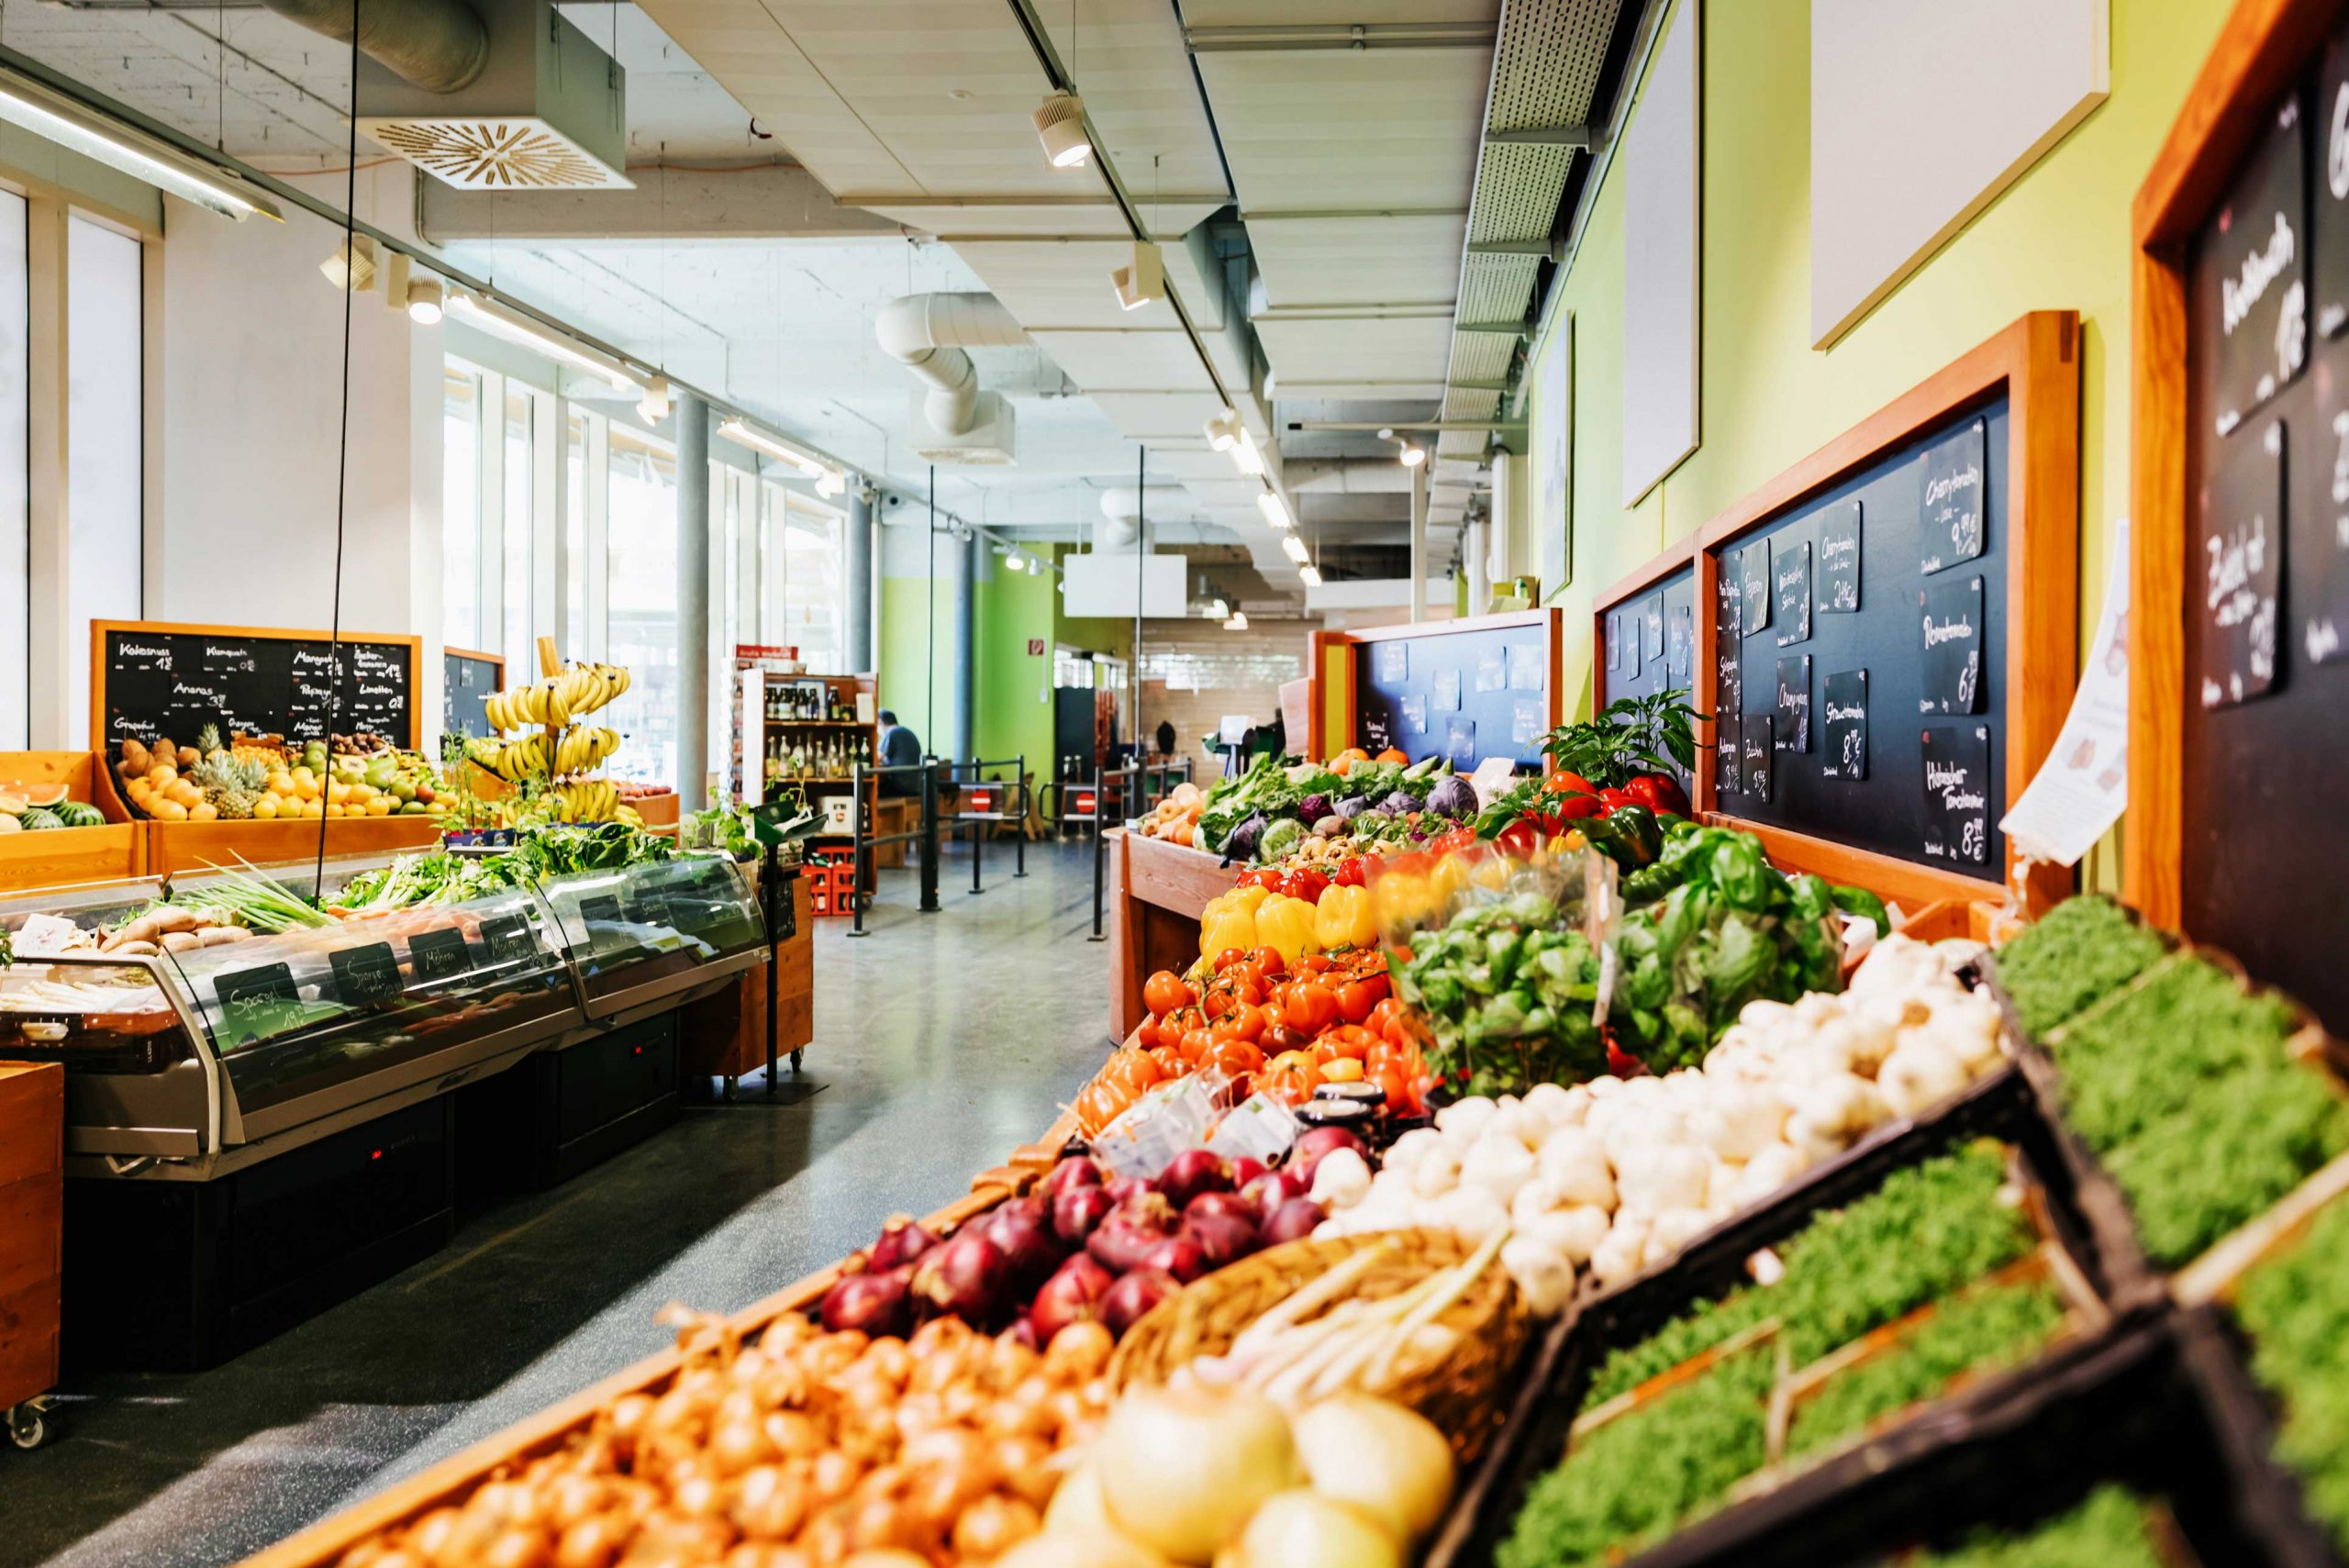 The vegetable aisle filled with various food items and fridges